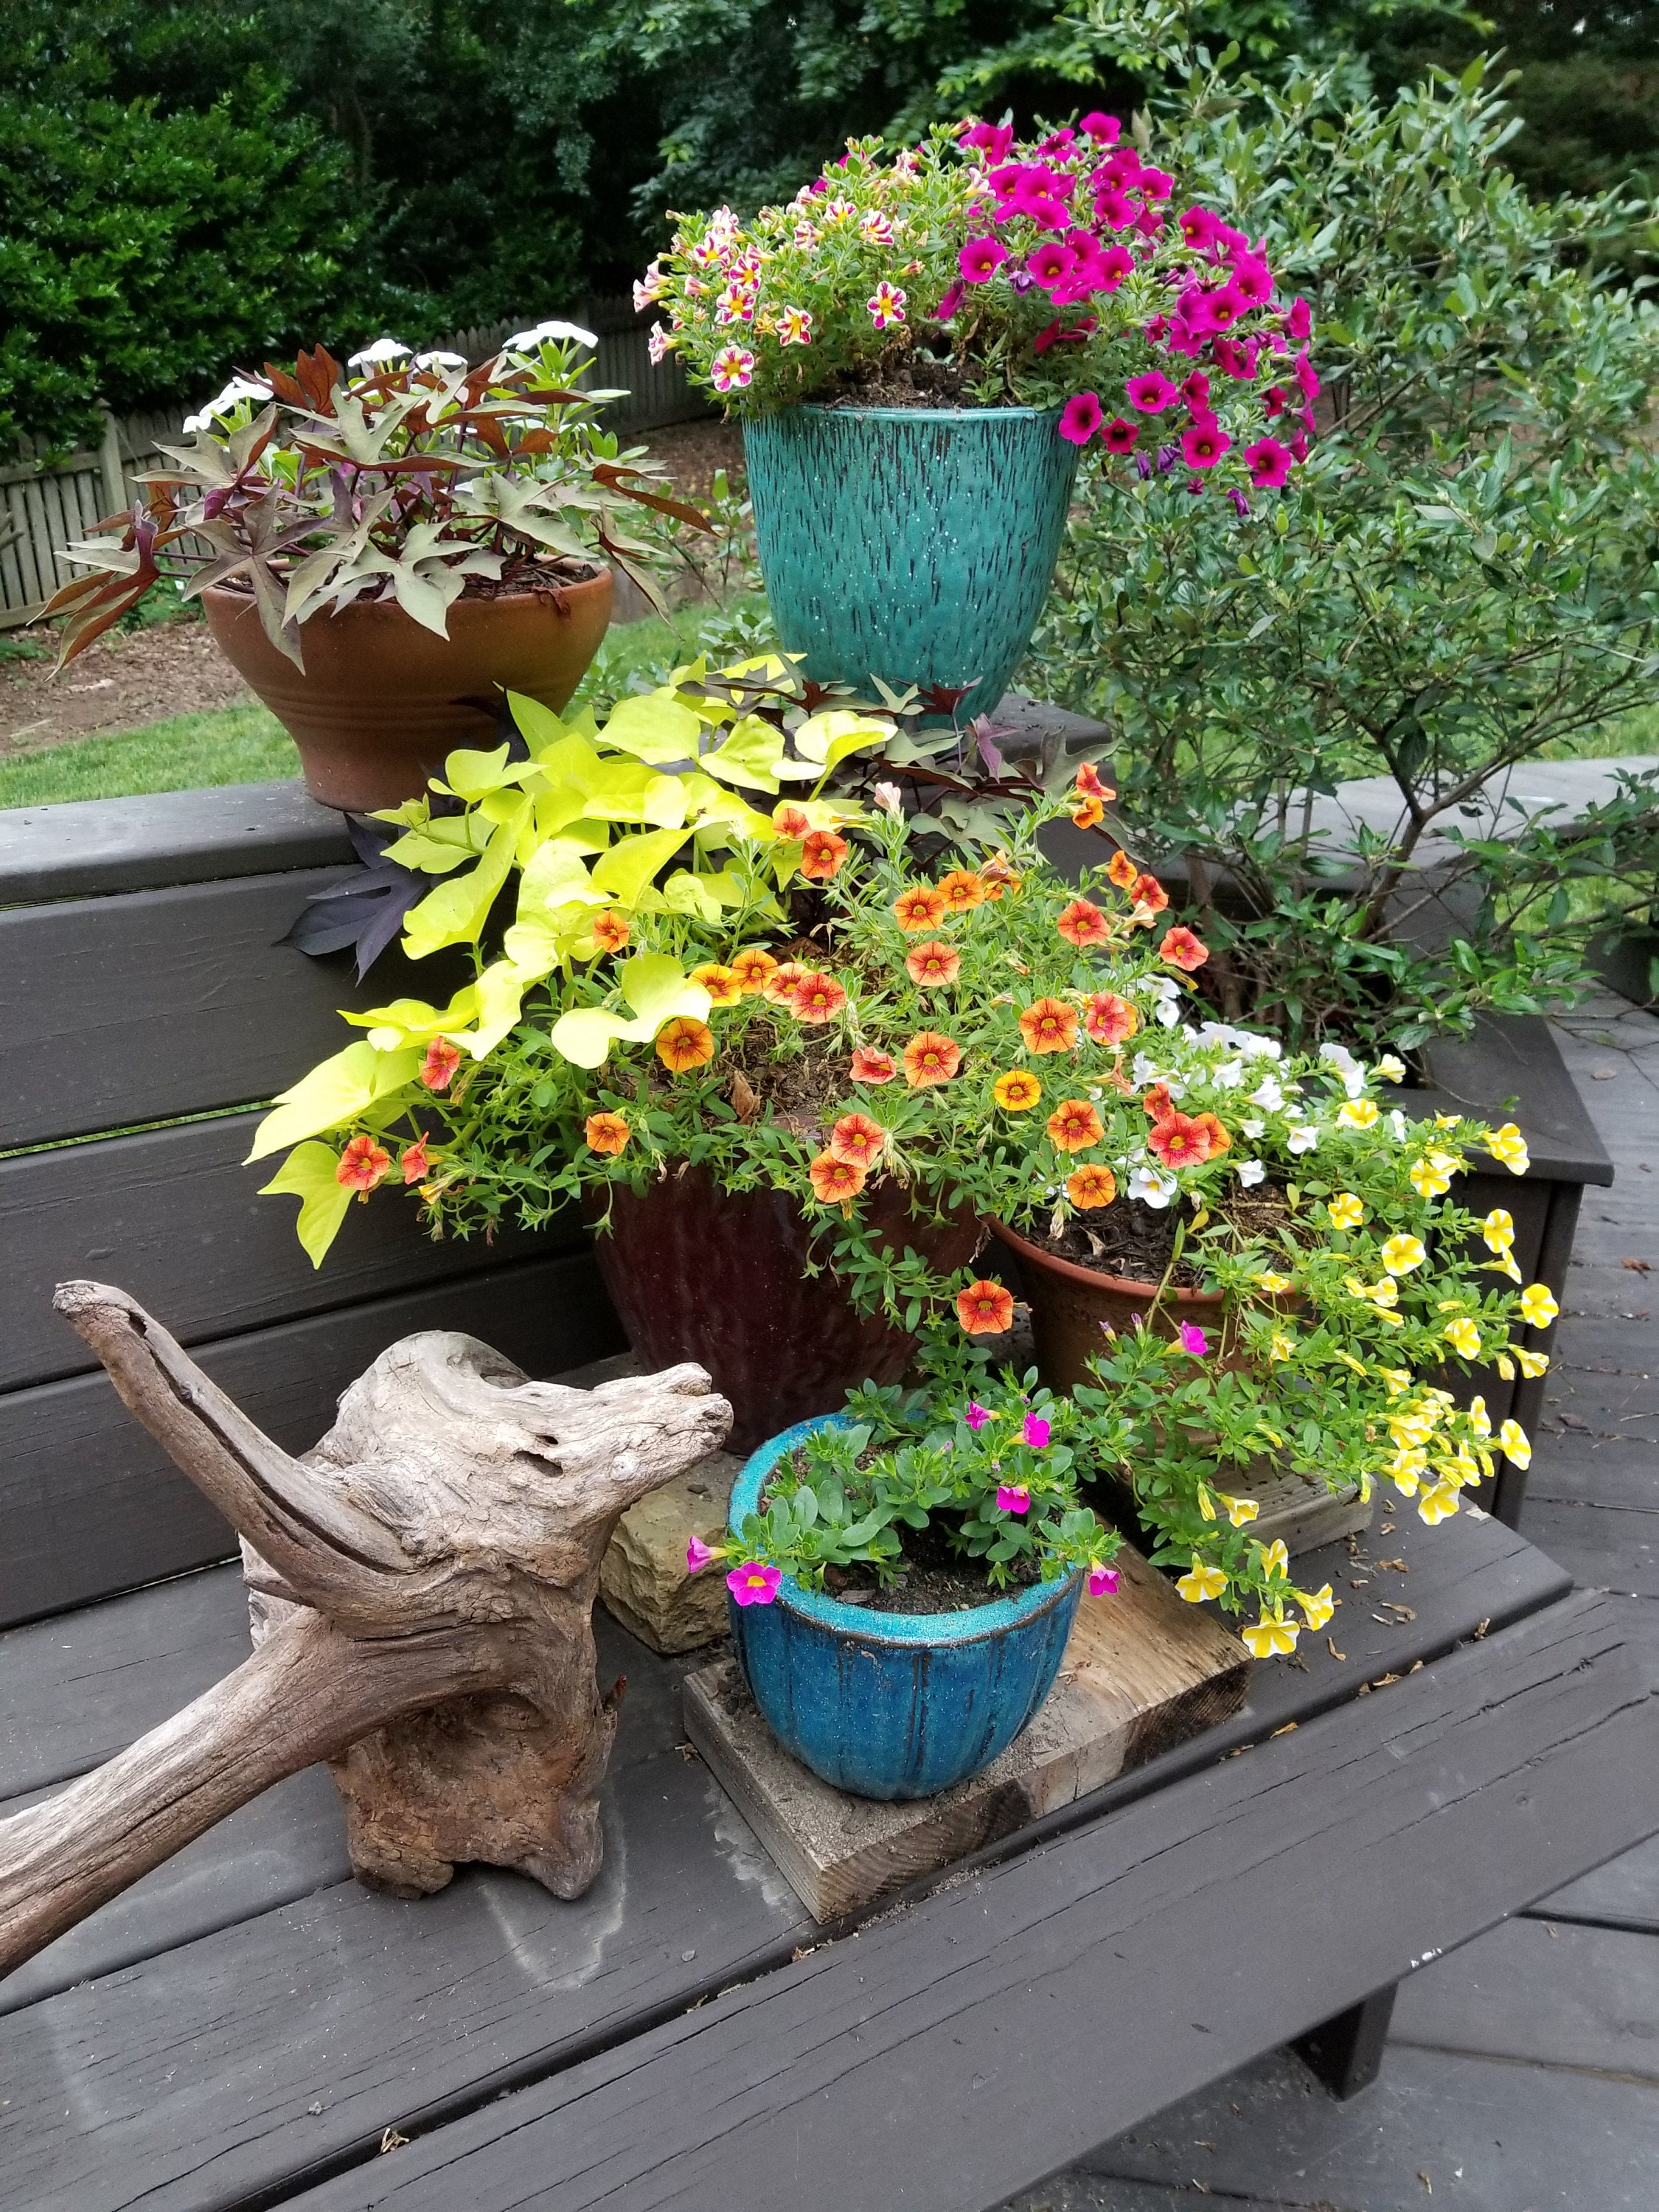 Driftwood root with a mix of tiered potted plants on the deck